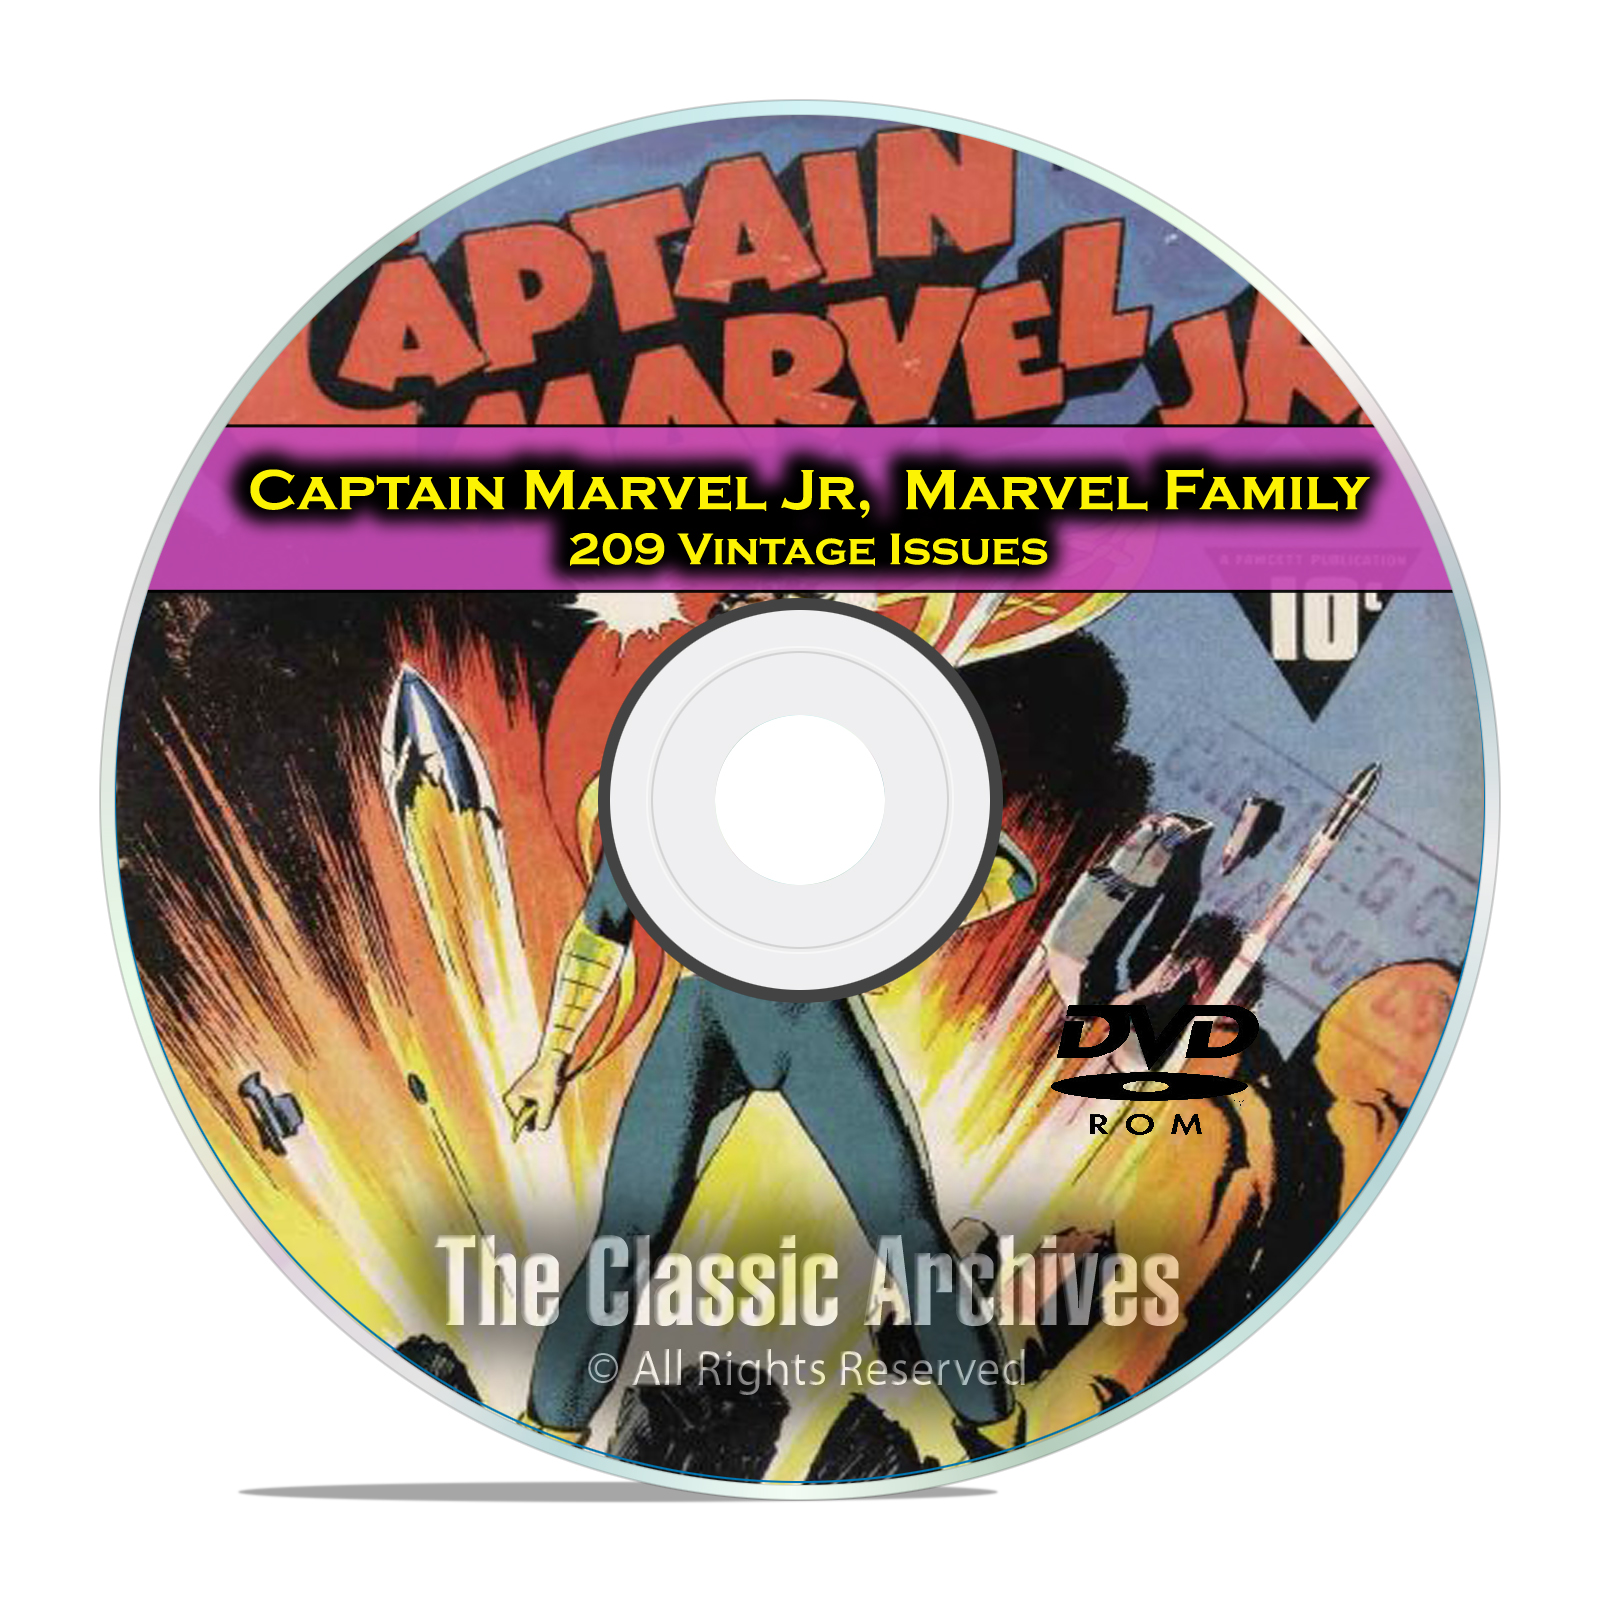 Captain Marvel Jr., and Marvel Family, 209 Issues, Golden Age Comics DVD